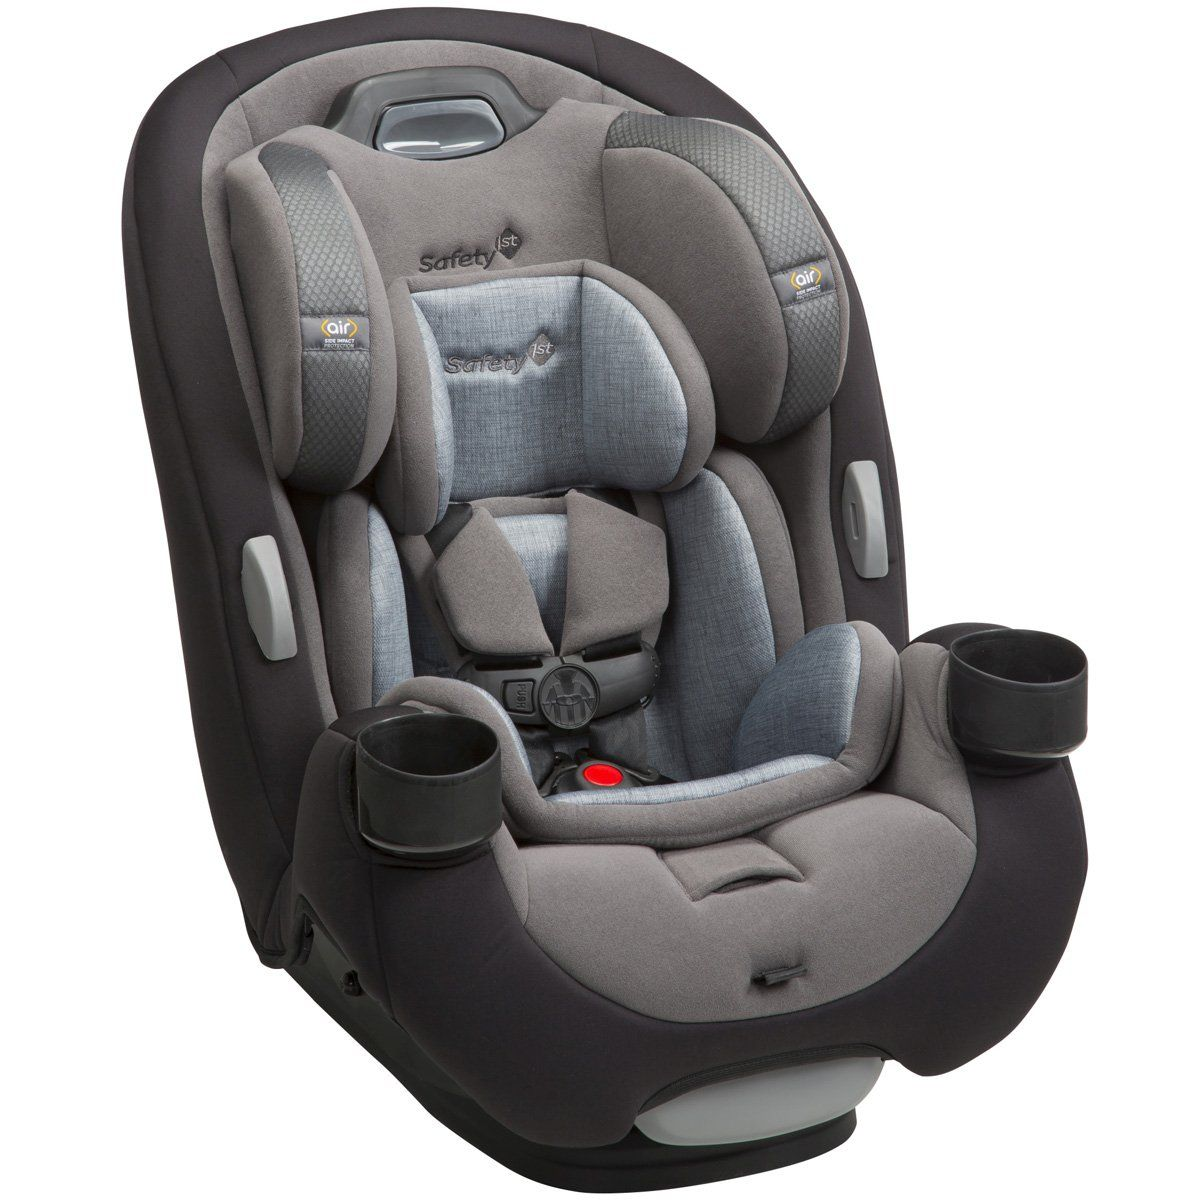 Safety 1st Grow and Go Air Night Sky Car seats, Baby